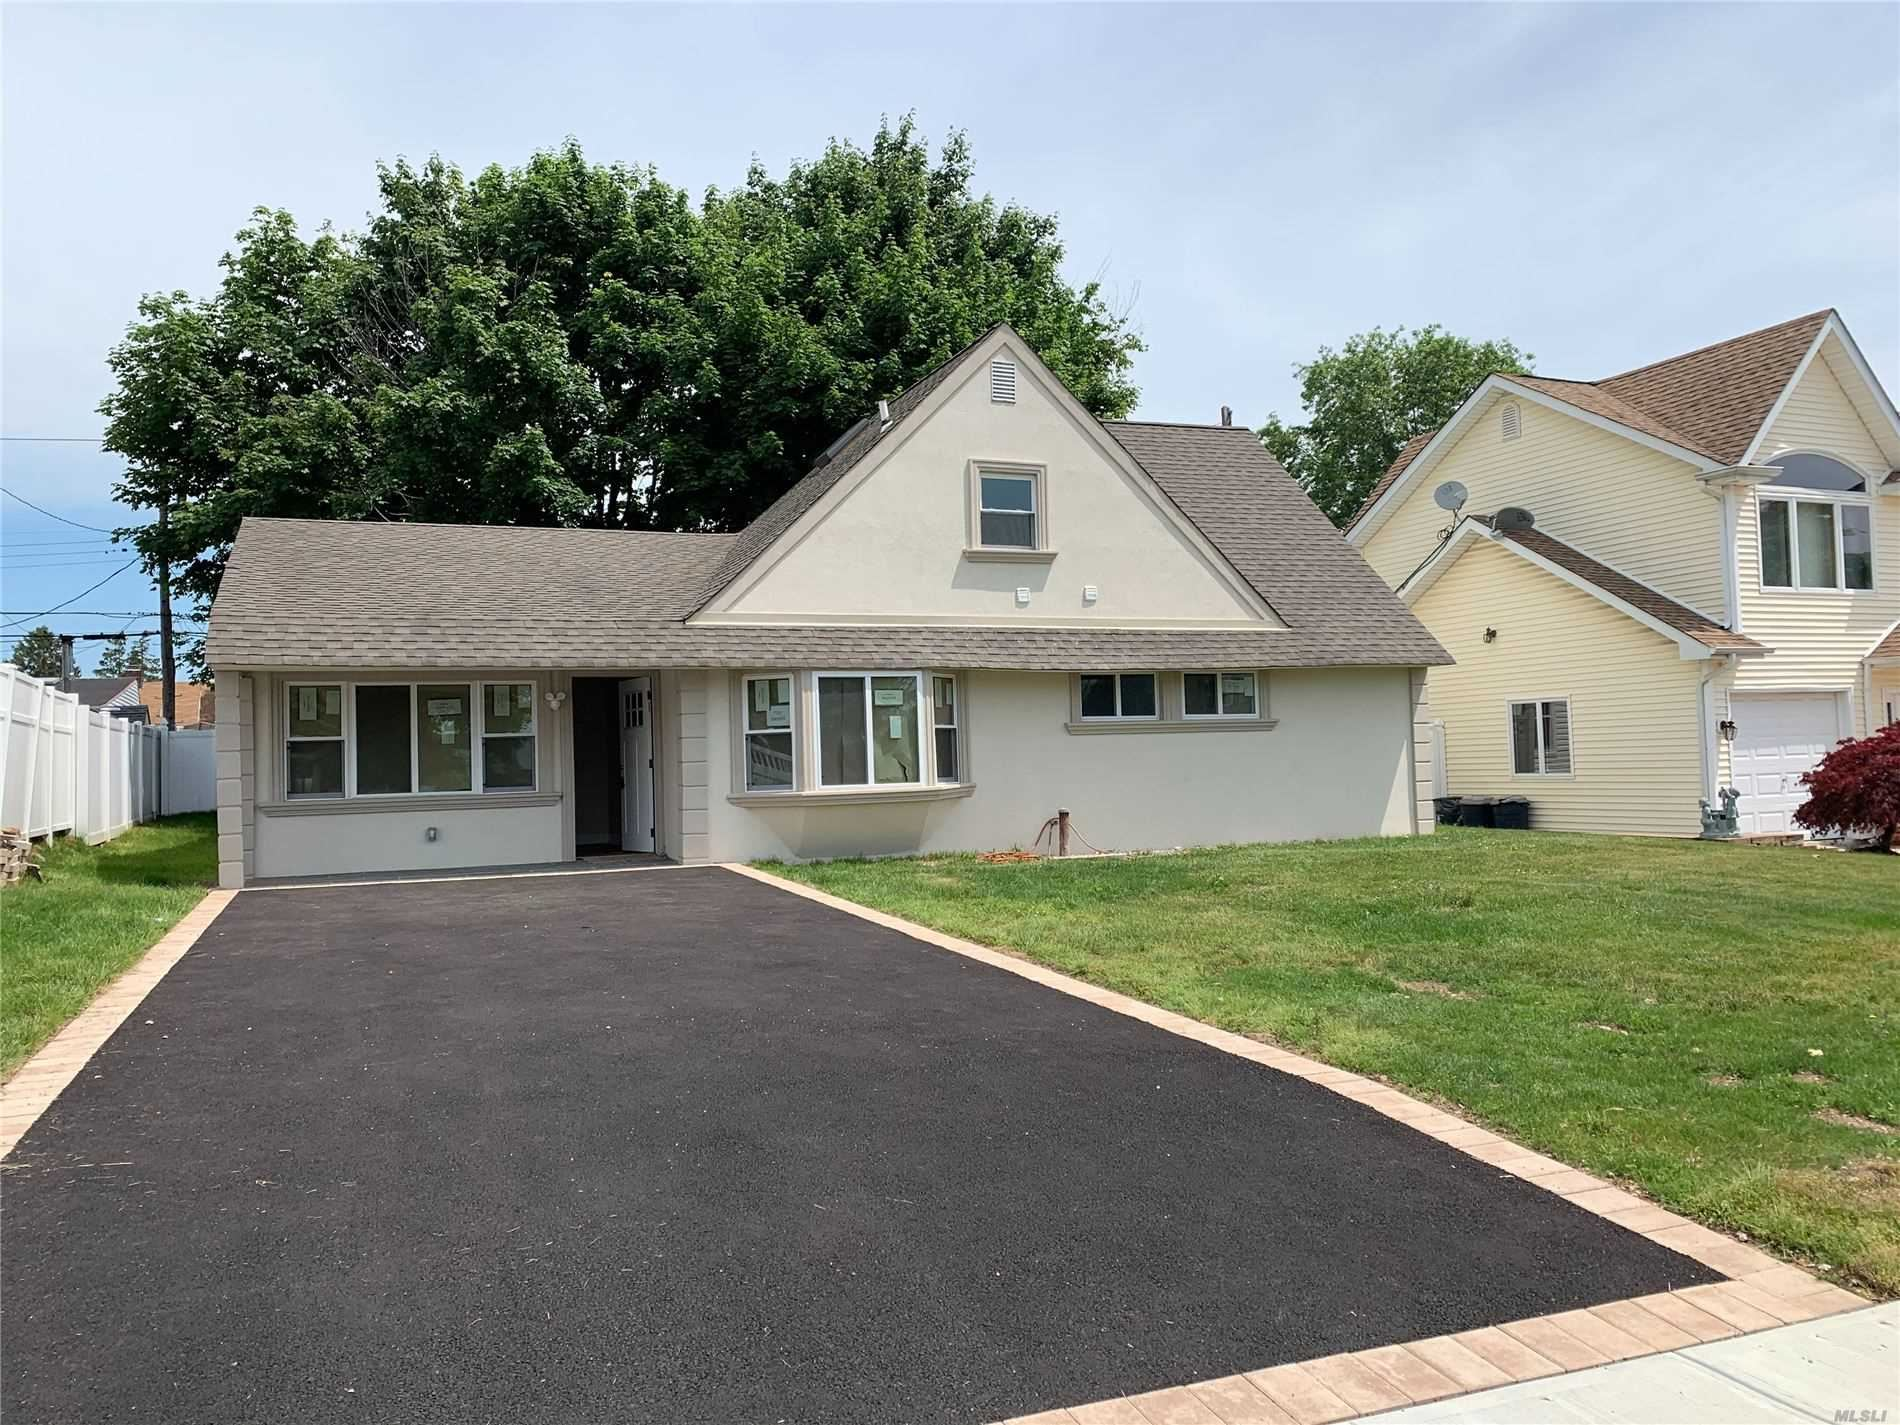 47 Bayberry Ln, Levittown, NY 11756 - MLS#: 3211846